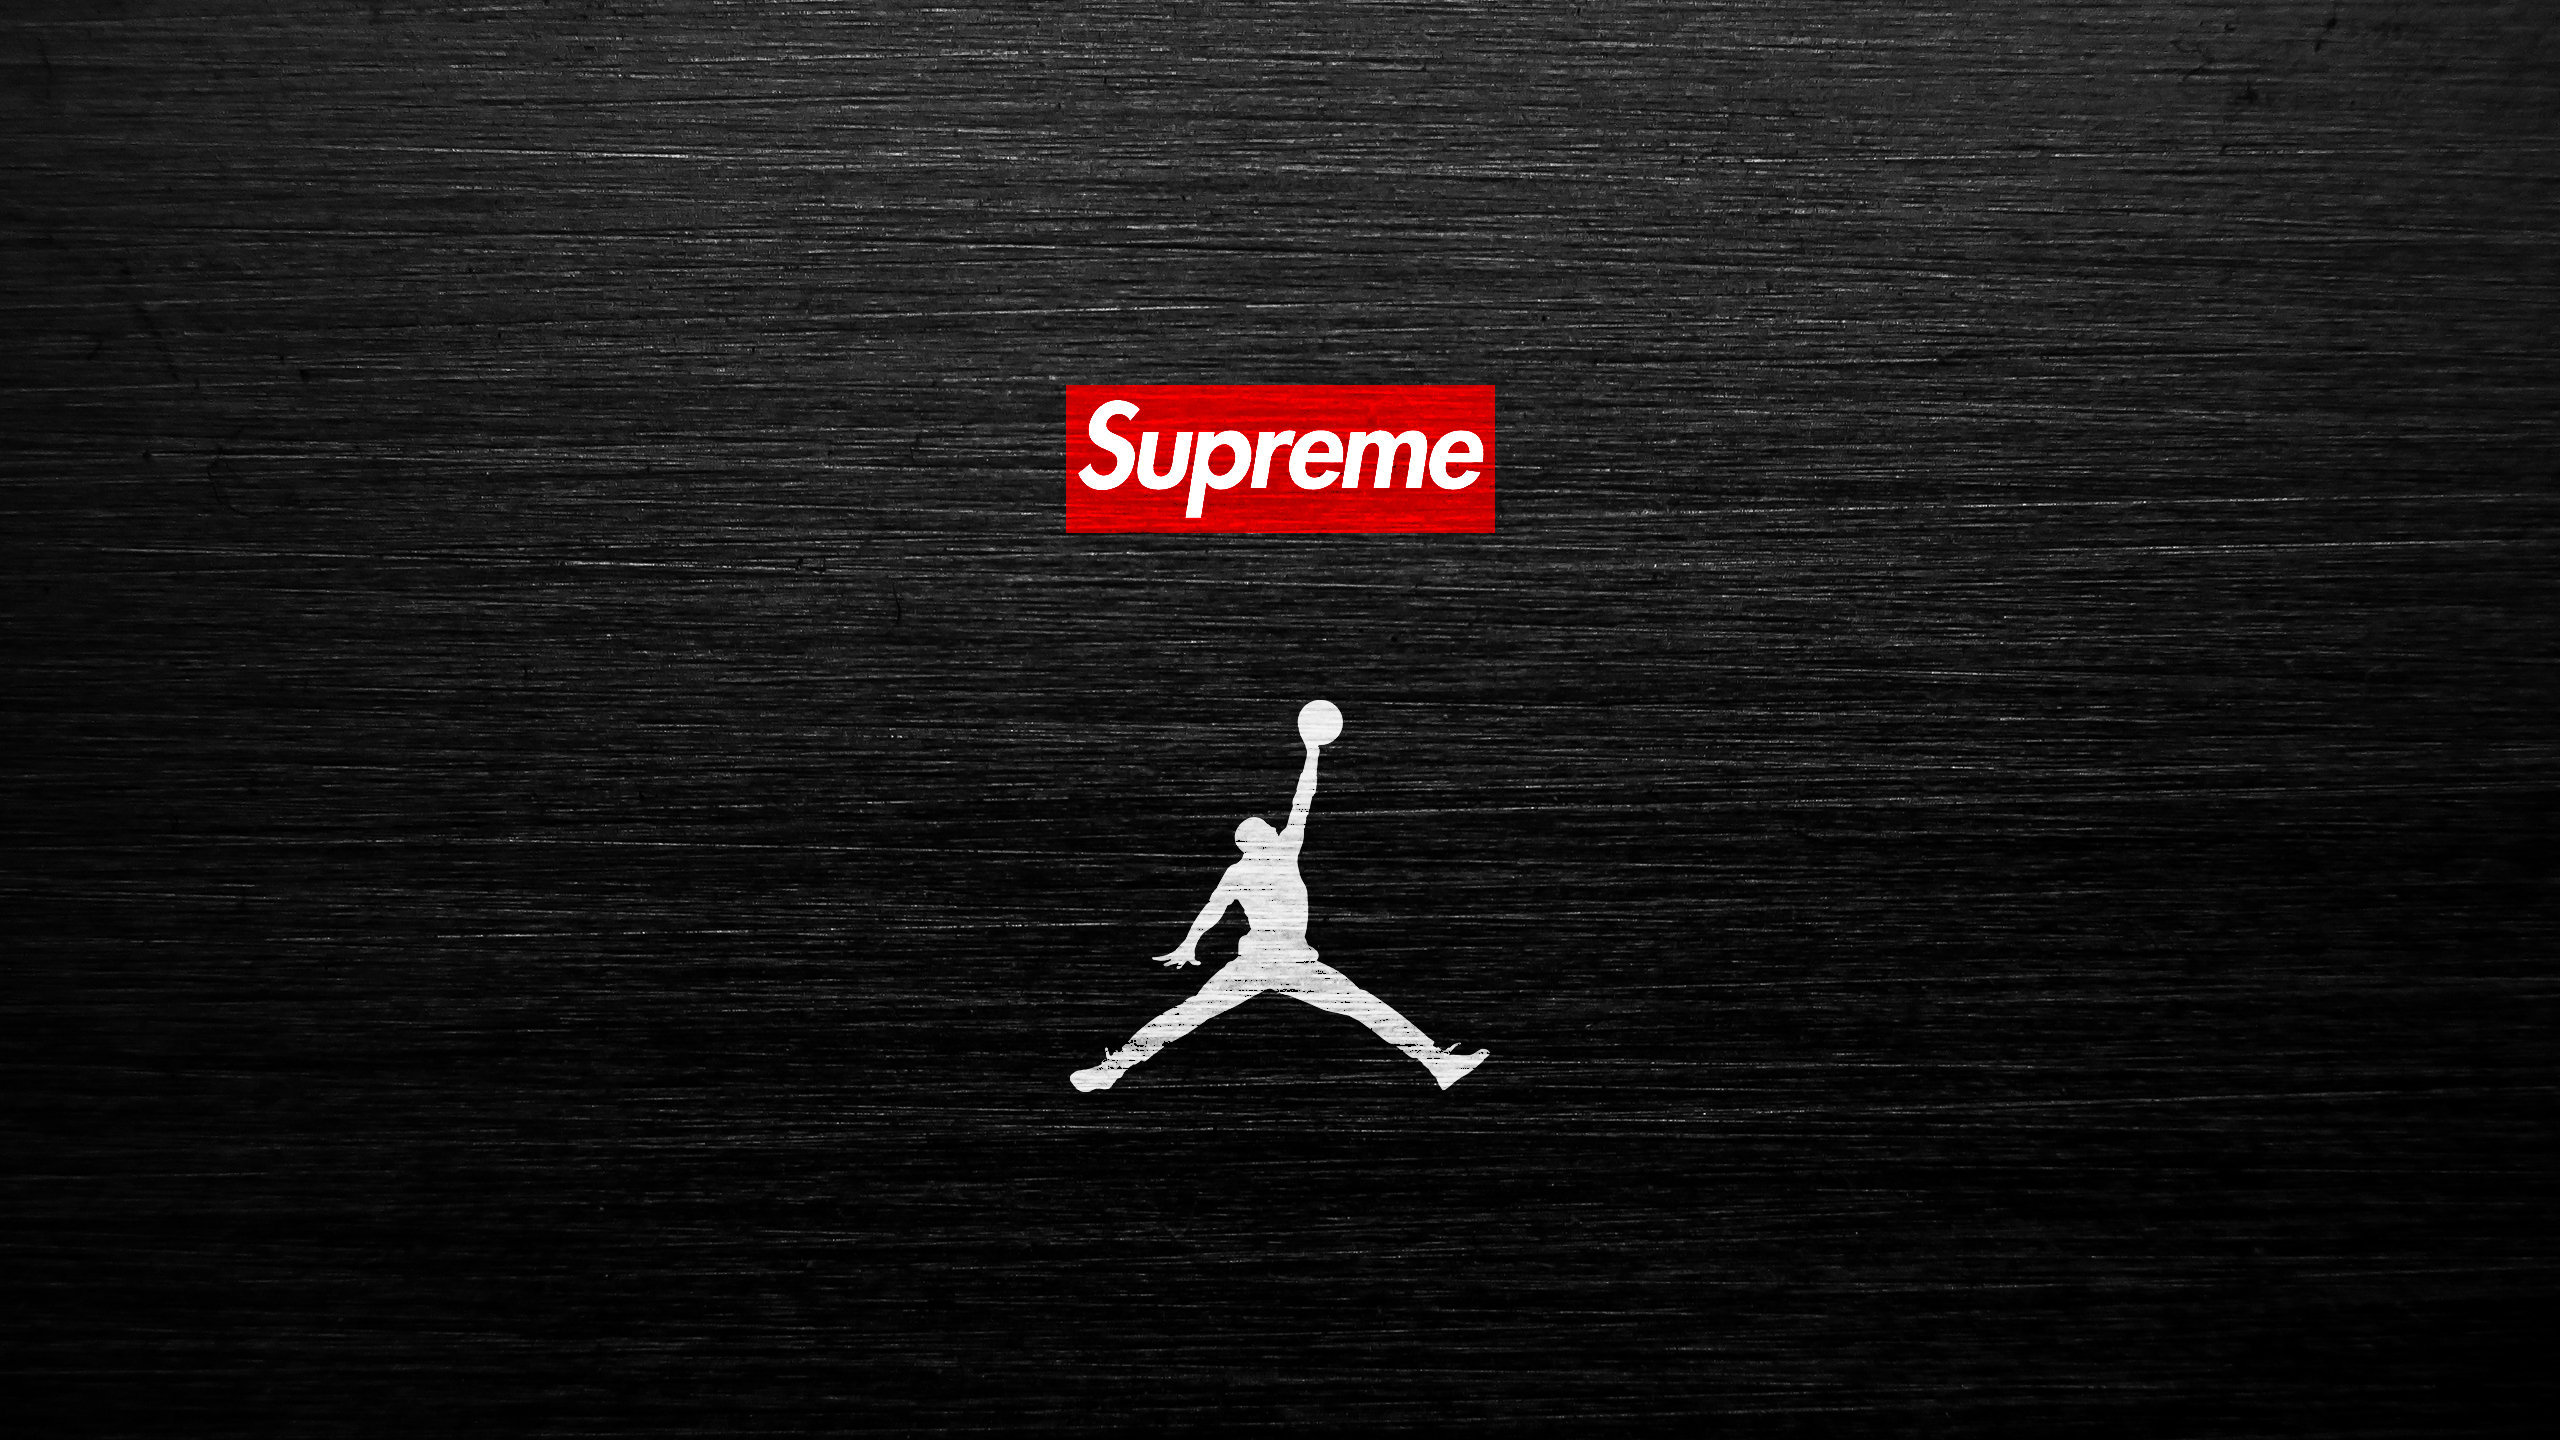 Air Jordan Supreme Wallpaper   AuthenticSupreme com Download the Air Jordan Supreme wallpaper below for your mobile device   Android phones  iPhone etc